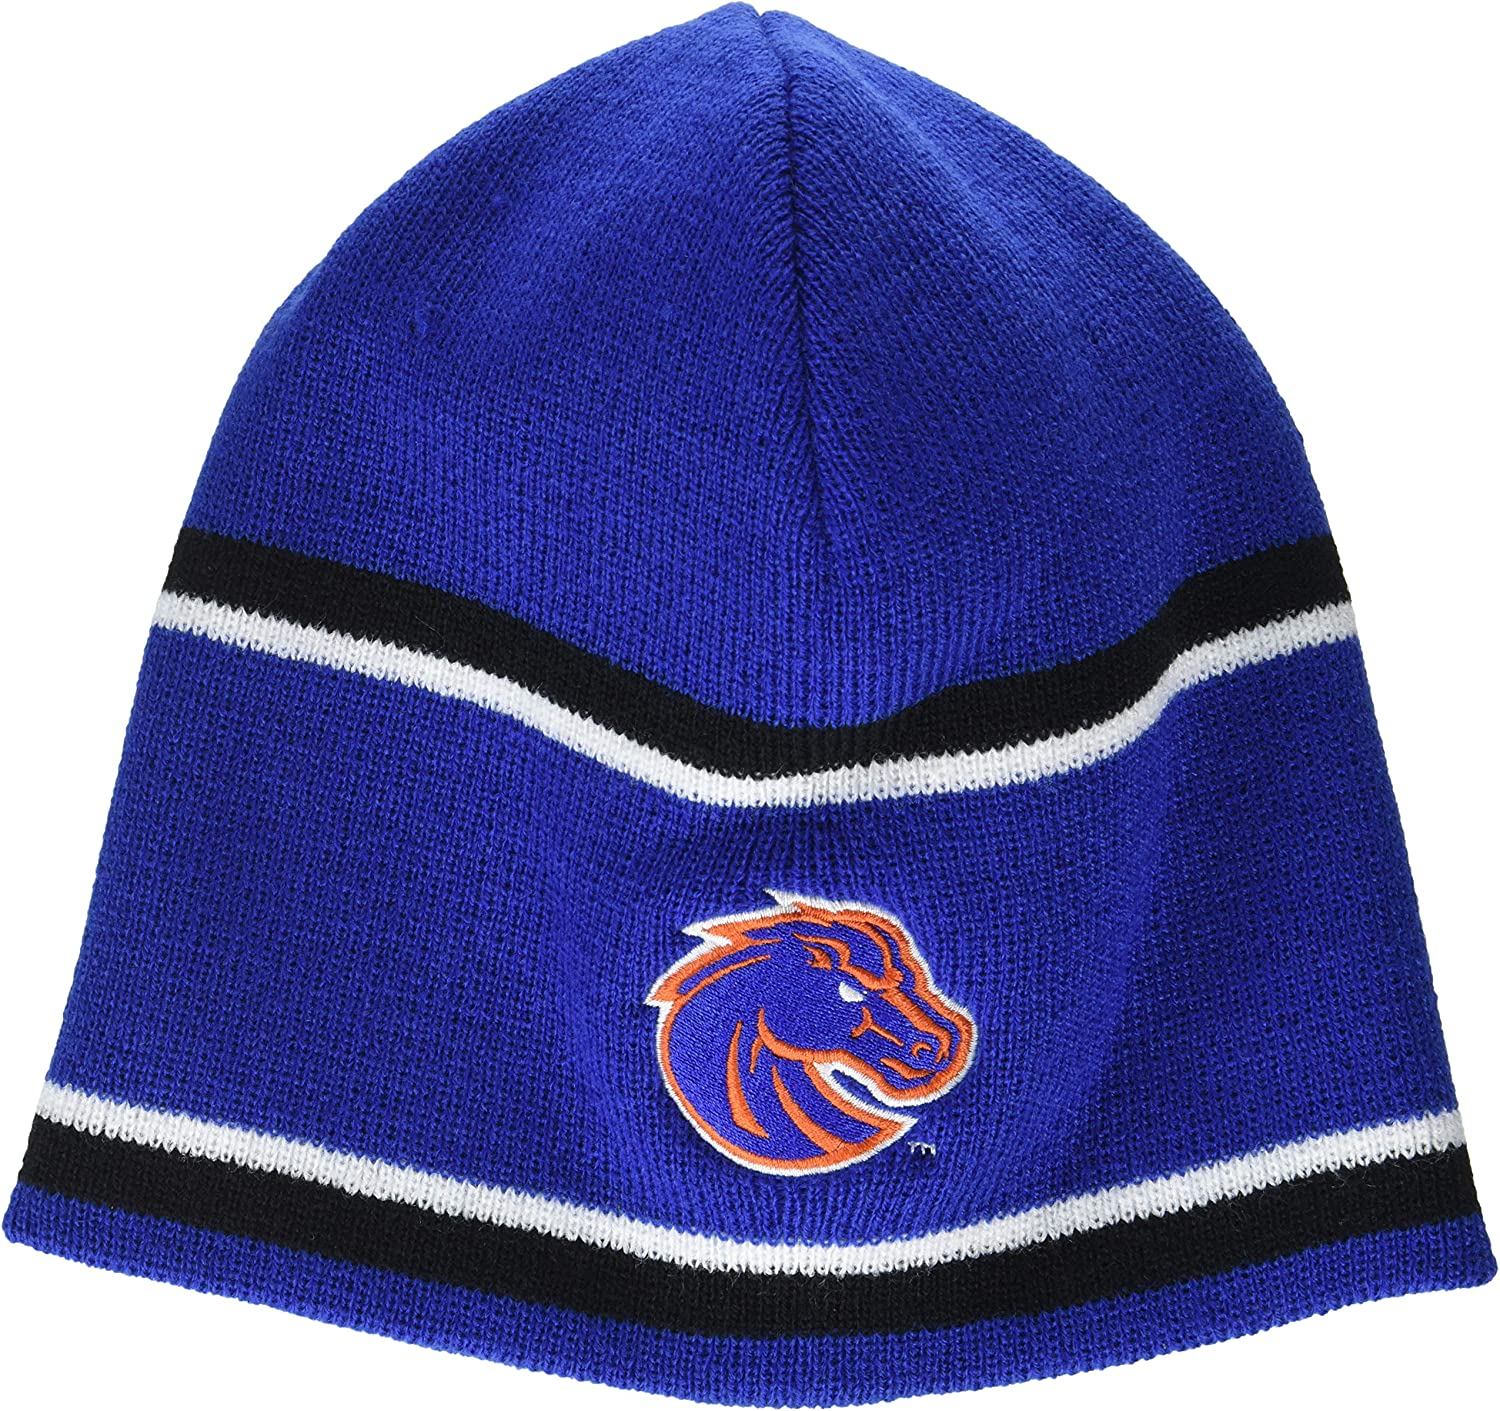 Ouray Sportswear Unisex Engager Beanie Engager Beanie